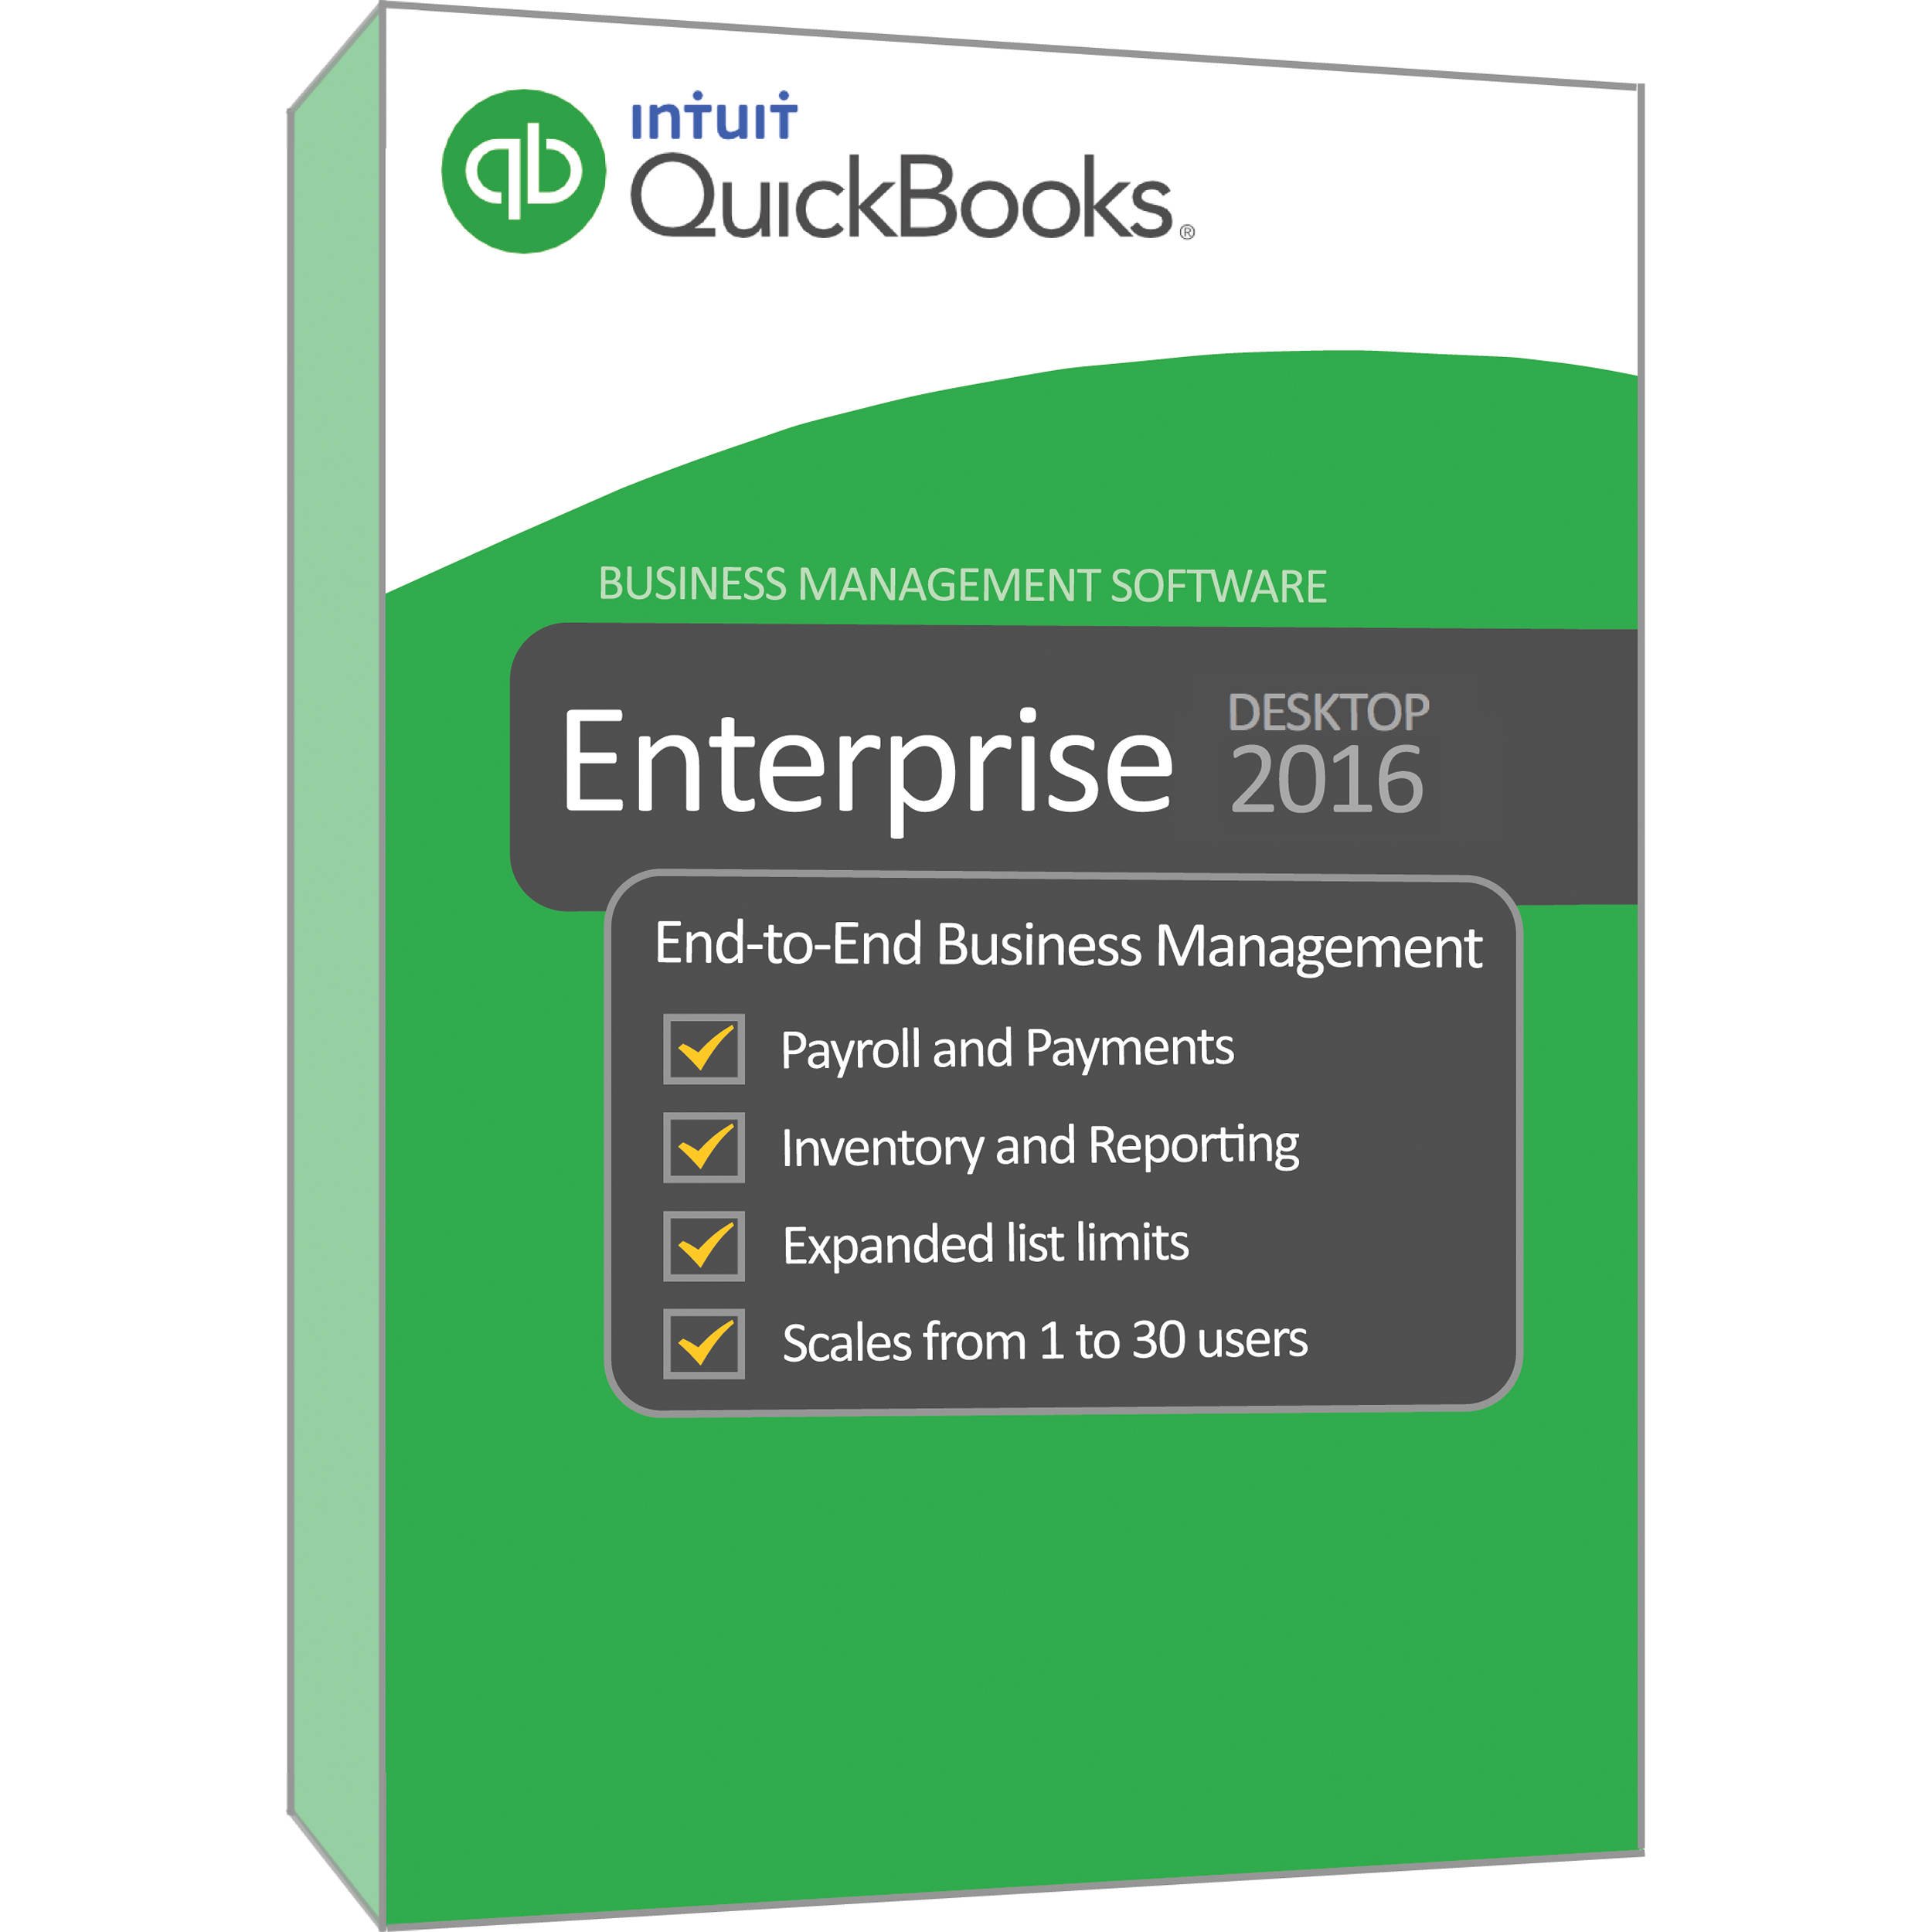 B&H Photo Video - Intuit Quickbooks 2016 Enterprise Solution